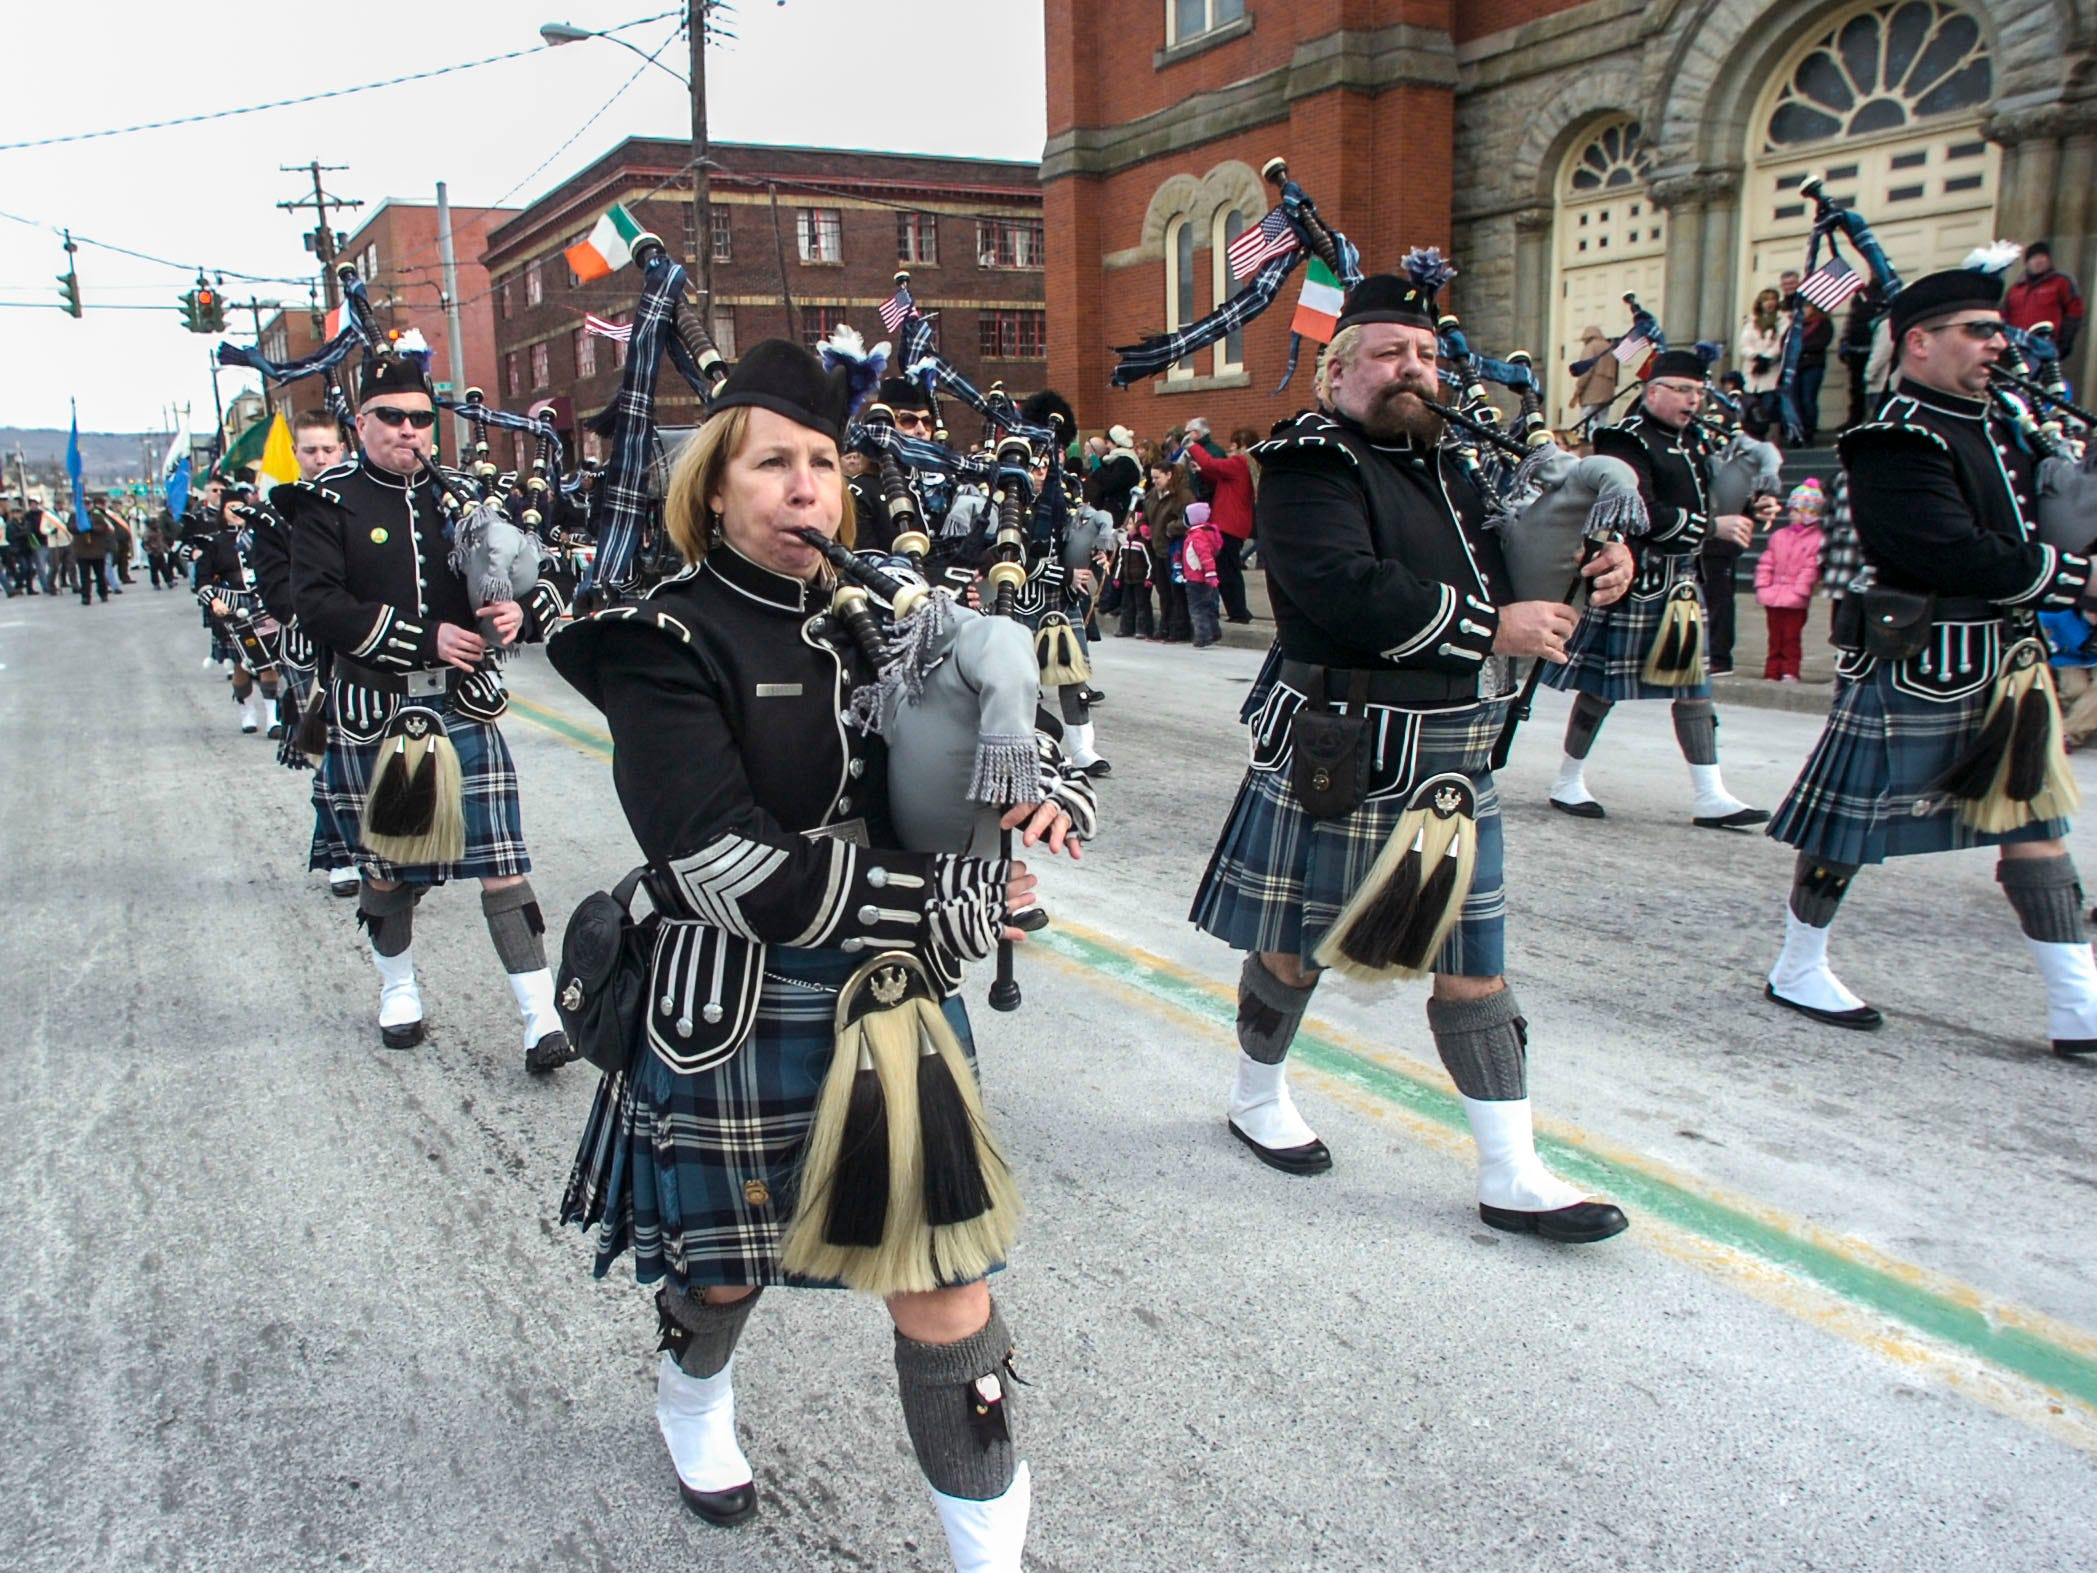 2014: The B.C. Celtic Pipes & Drums march past St. Mary of Assumption on Court Street in the 47th annual St. PatrickÕs Day Parade in downtown Binghamton on Saturday.